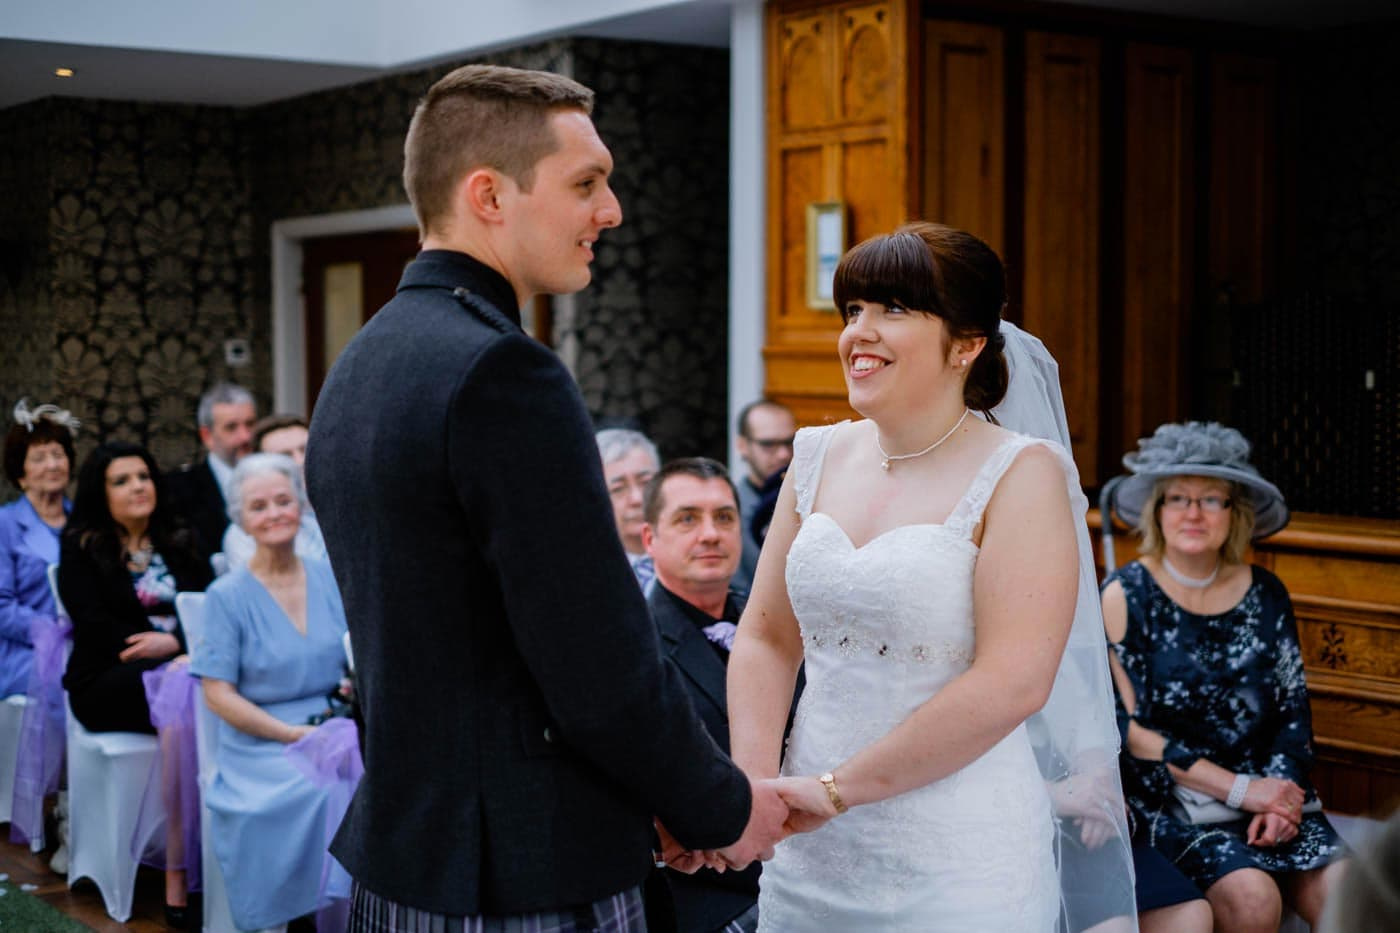 Happy Scottish bride and groom holding hands during their wedding ceremony at Broadoaks Country House